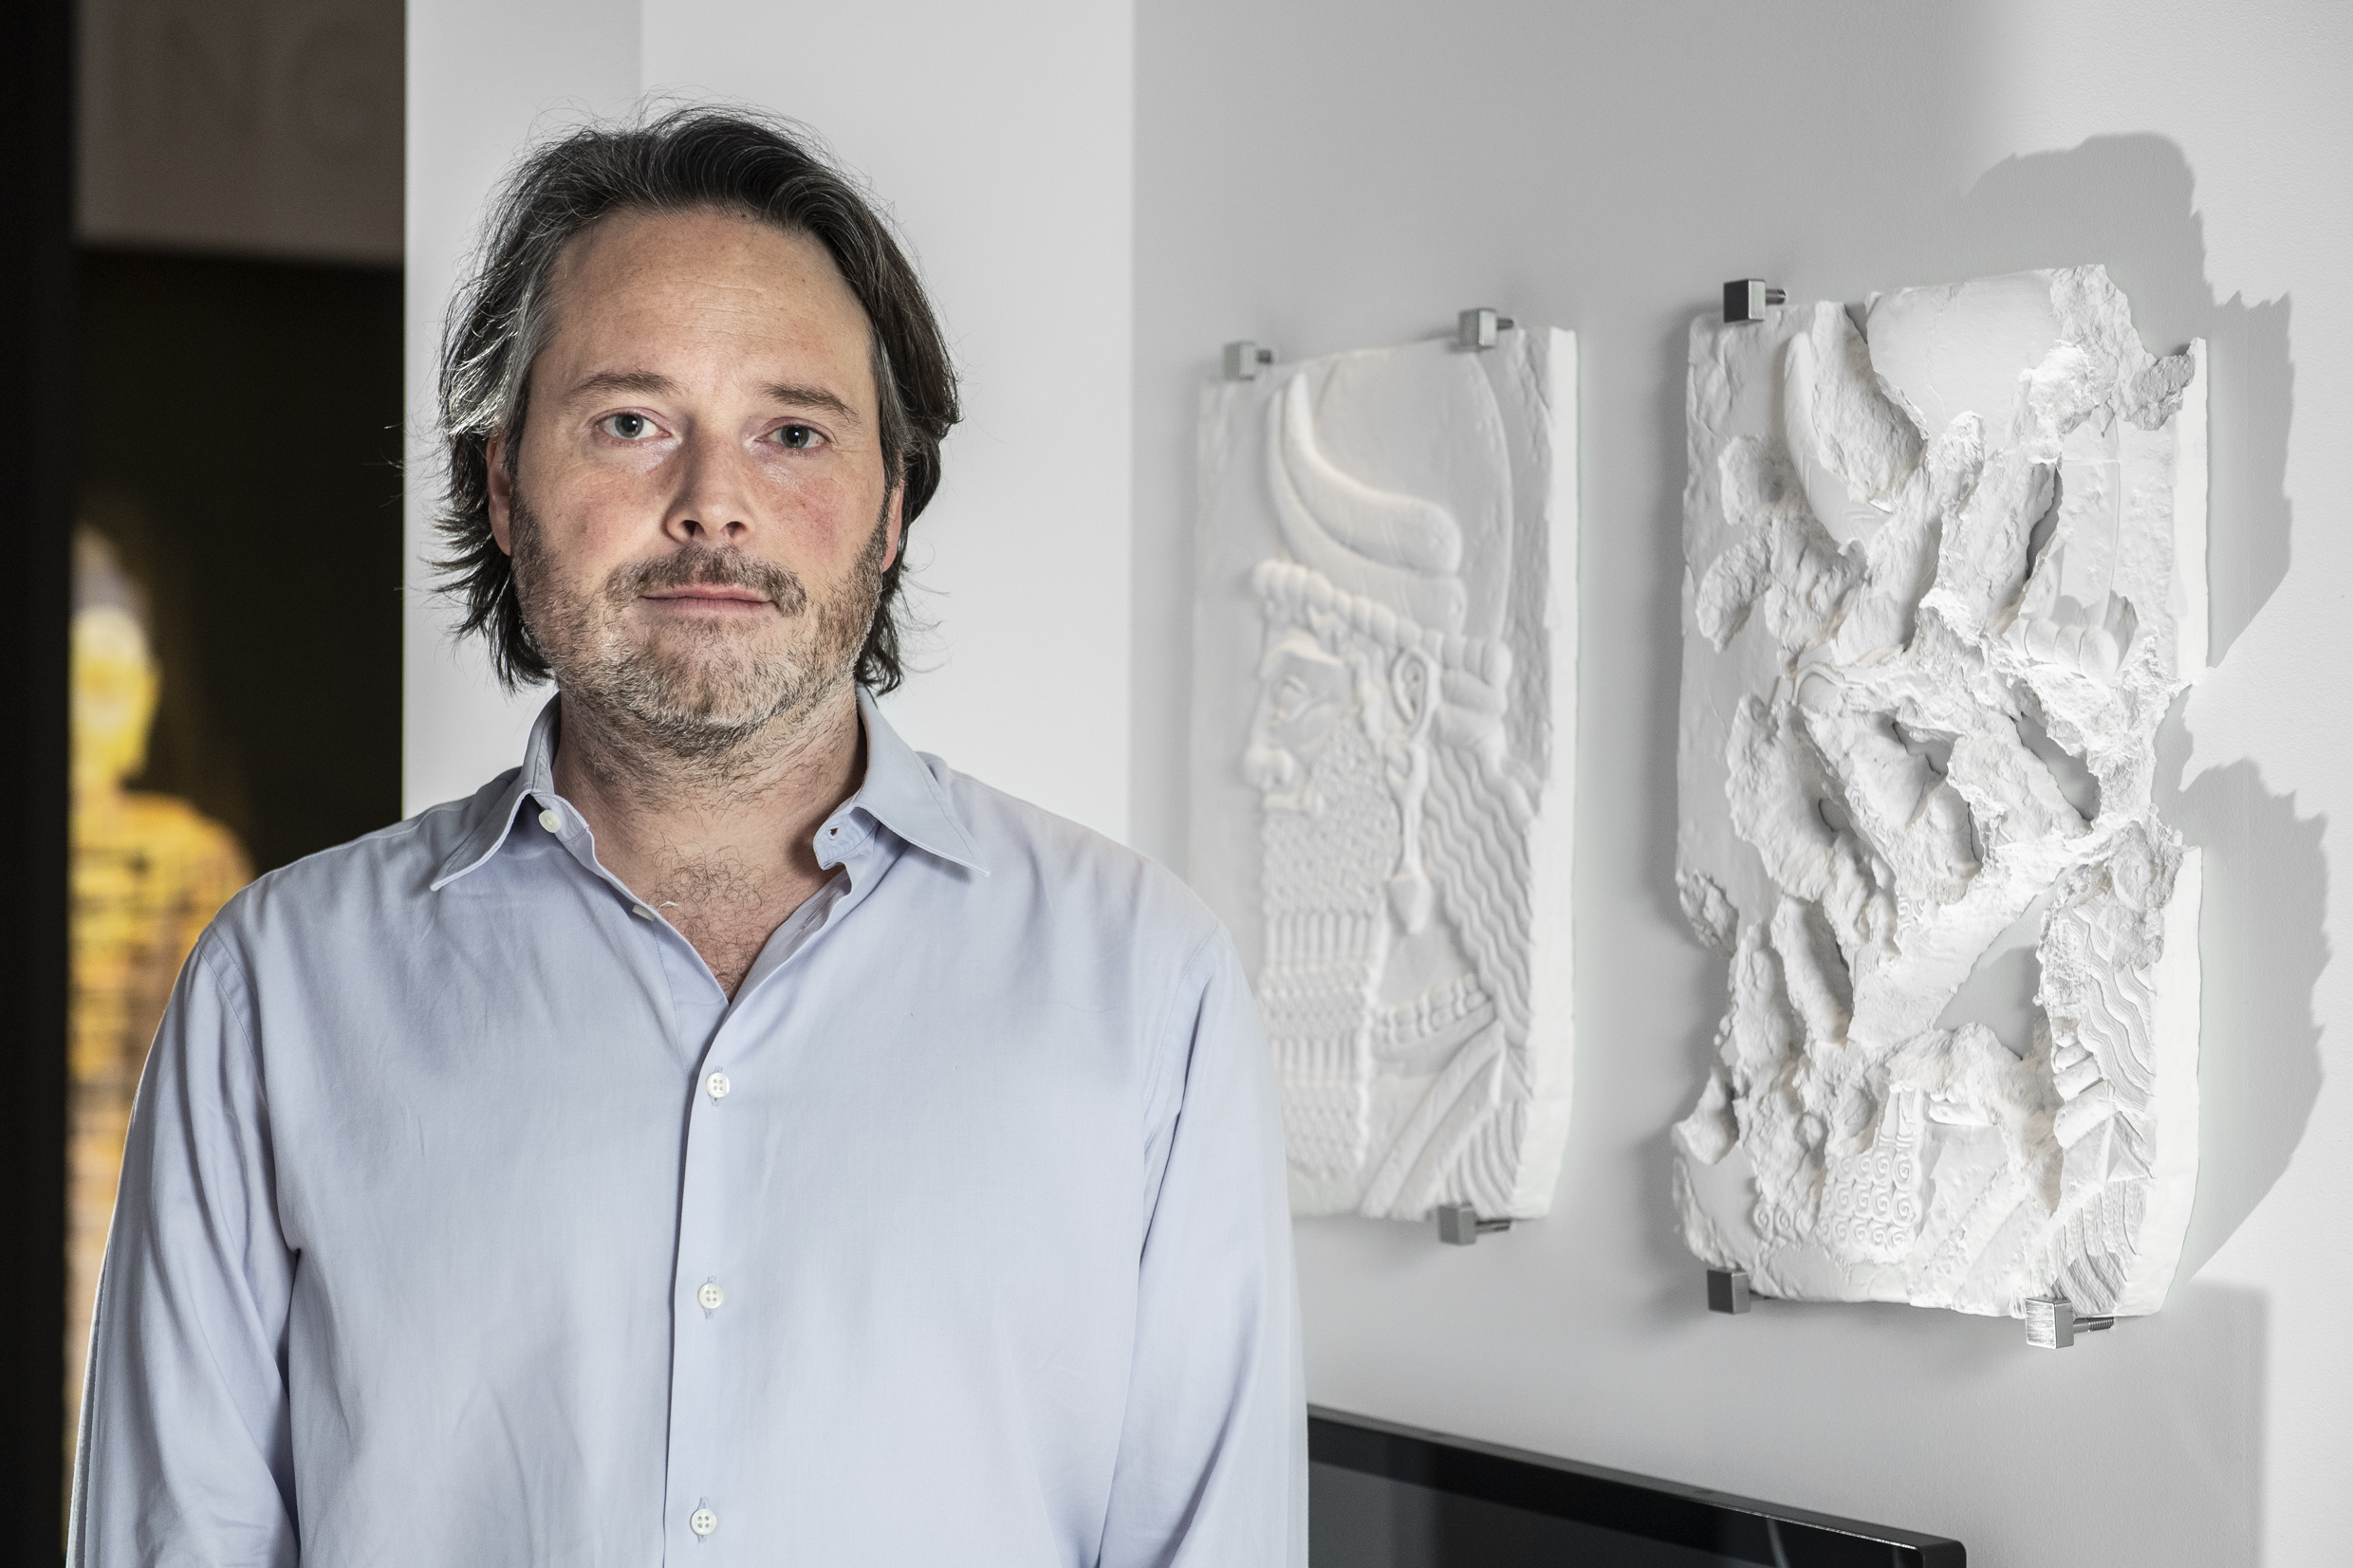 Portrait of artist Piers Secunda standing in front of one of his artworks in What Remains at IWM London